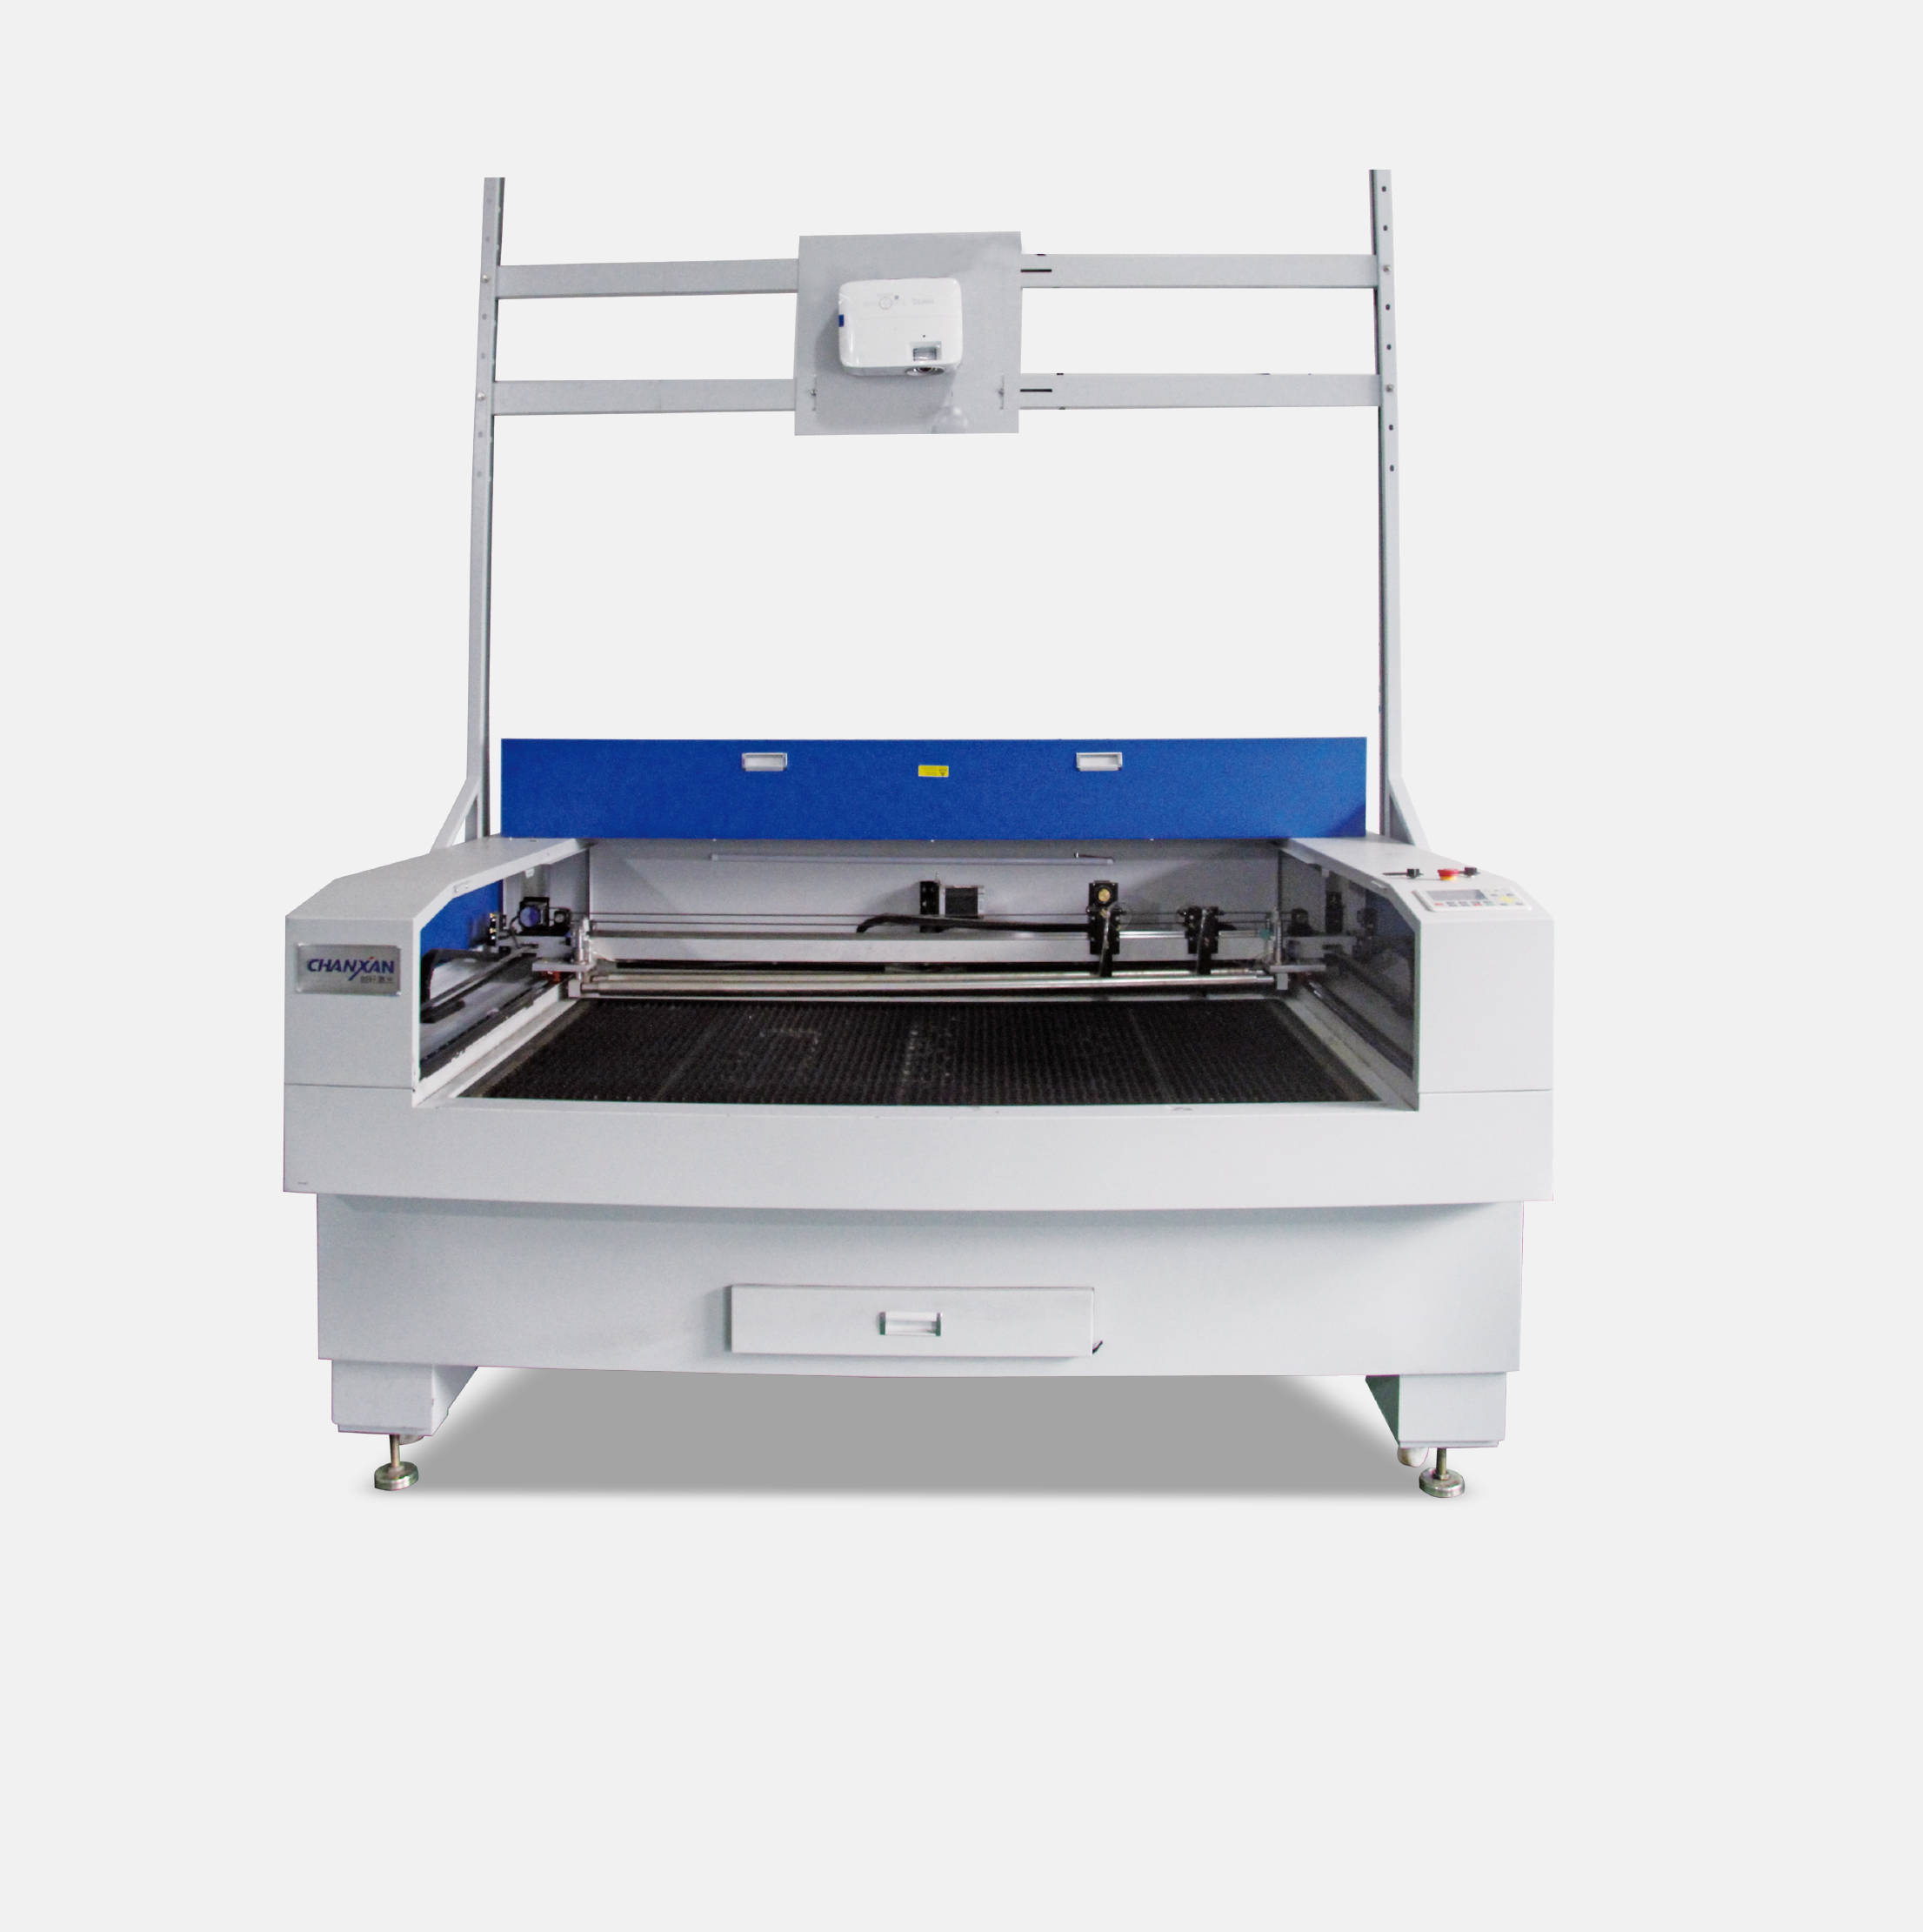 CW-960Y / CW-1610TY PROJECTOR POSITIONG LASER CUTTING